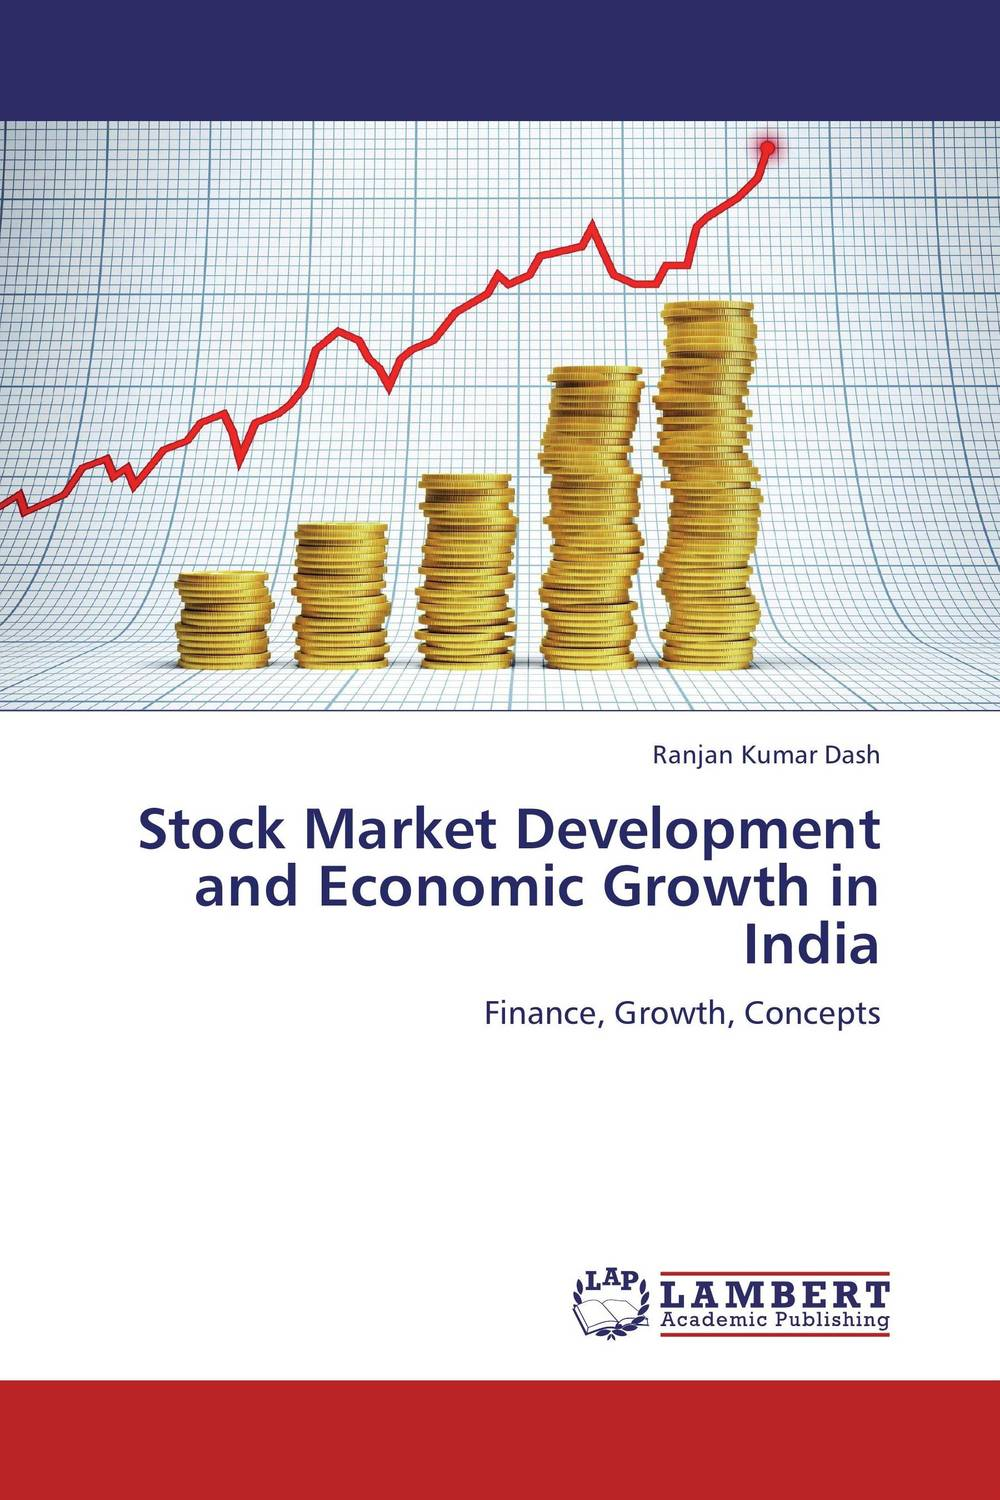 Stock Market Development and Economic Growth in India impact of stock market performance indices on economic growth